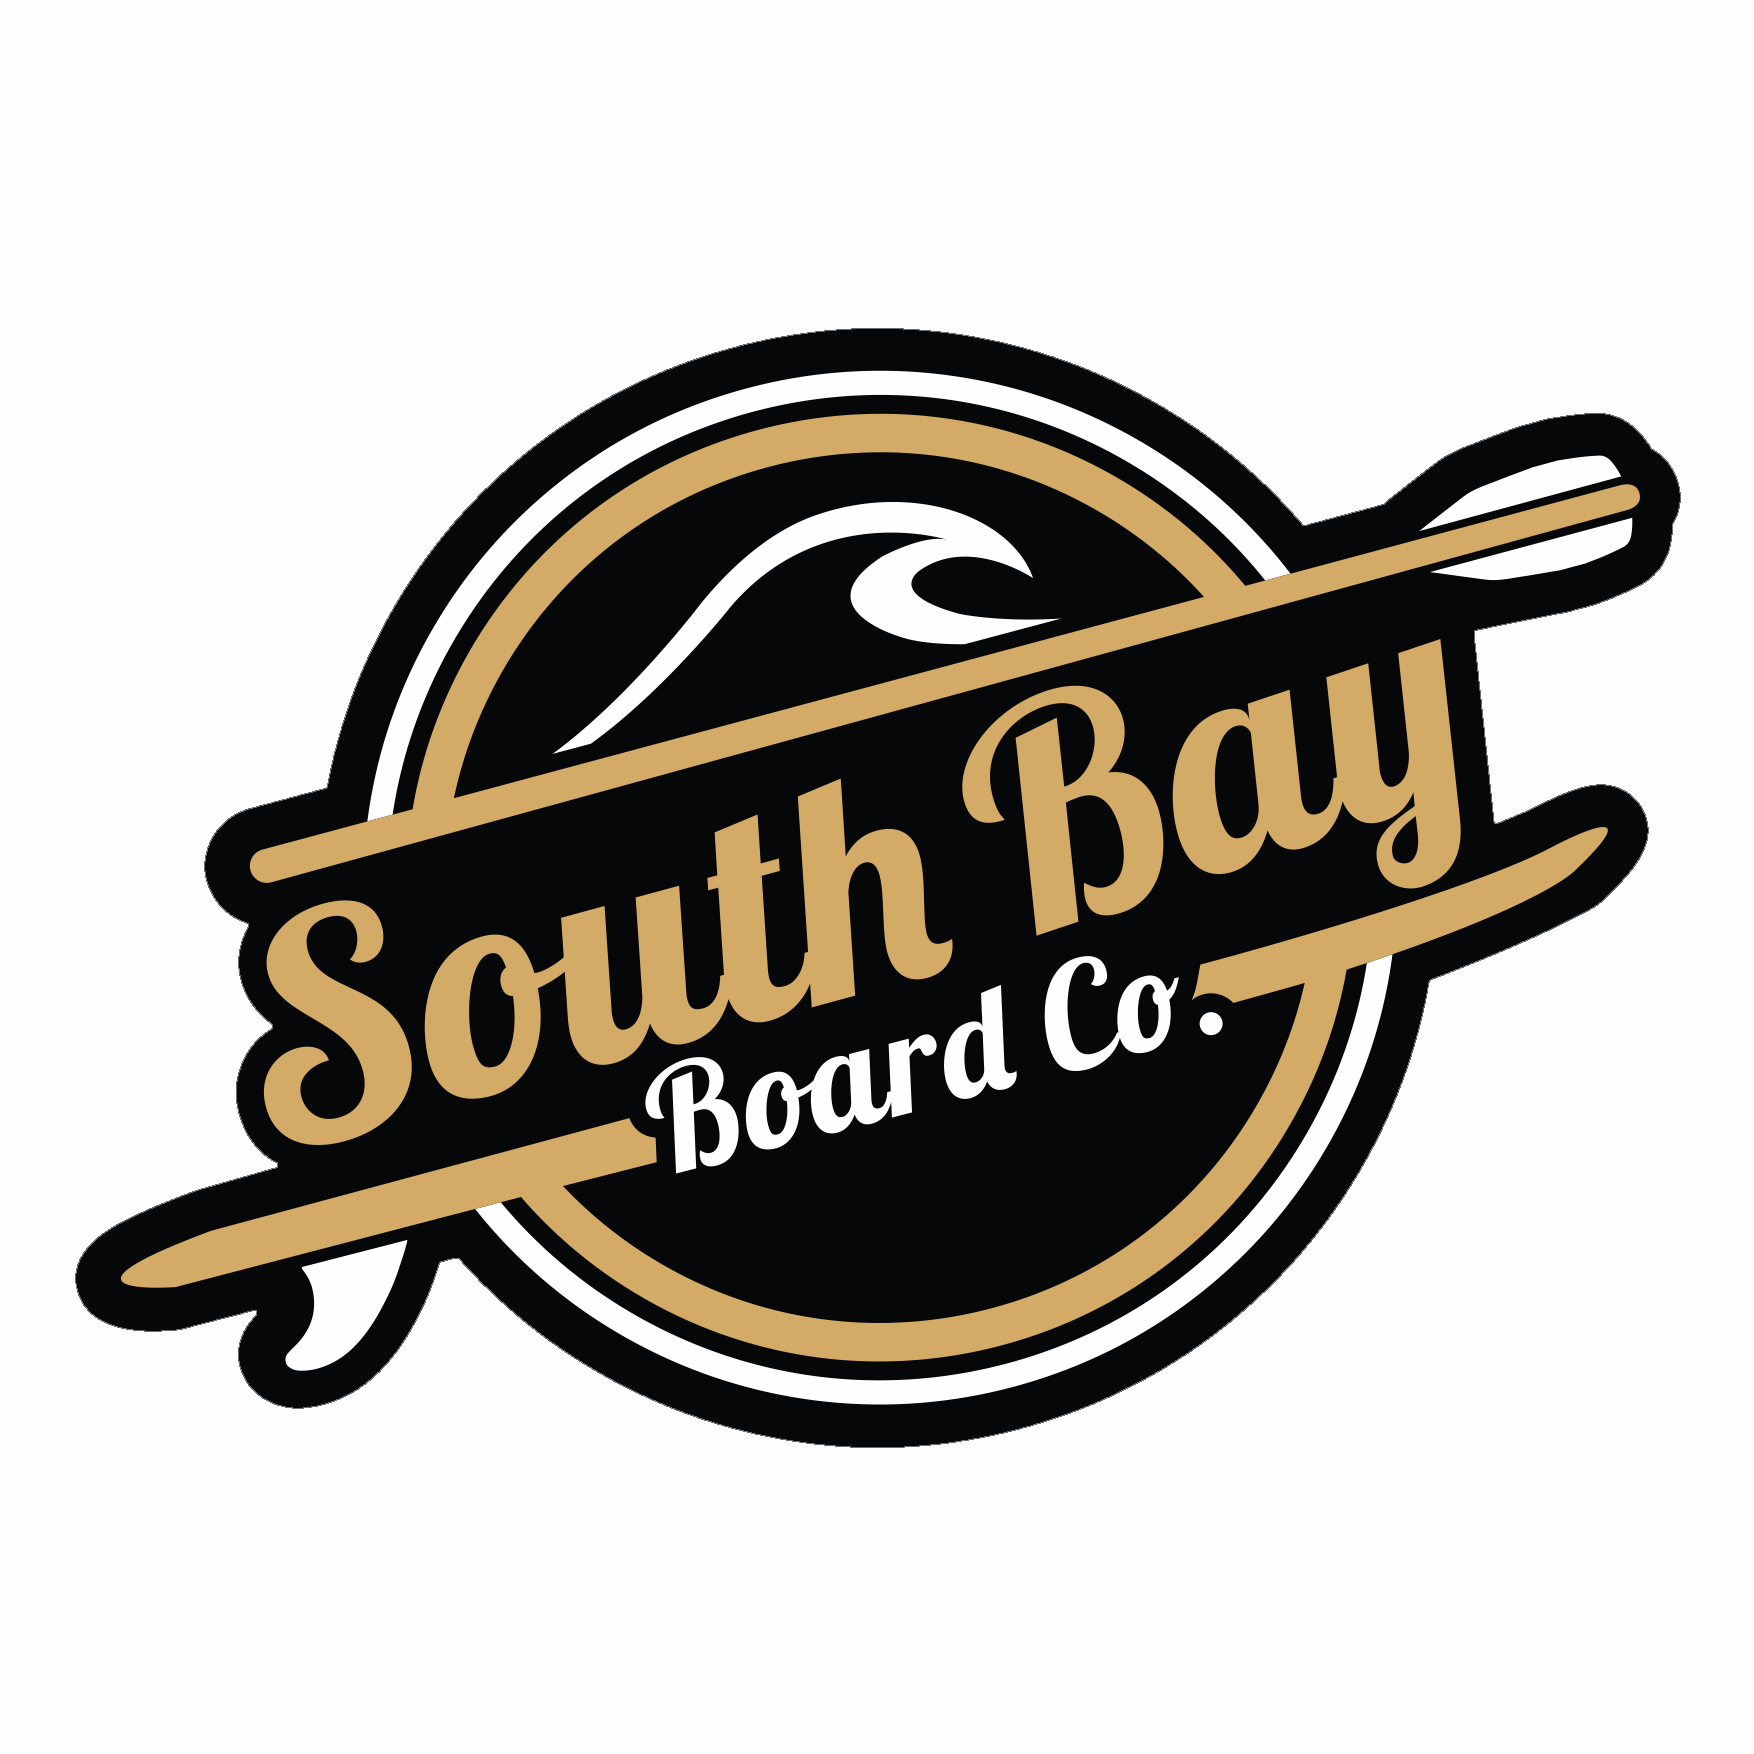 South Bay Board Co.